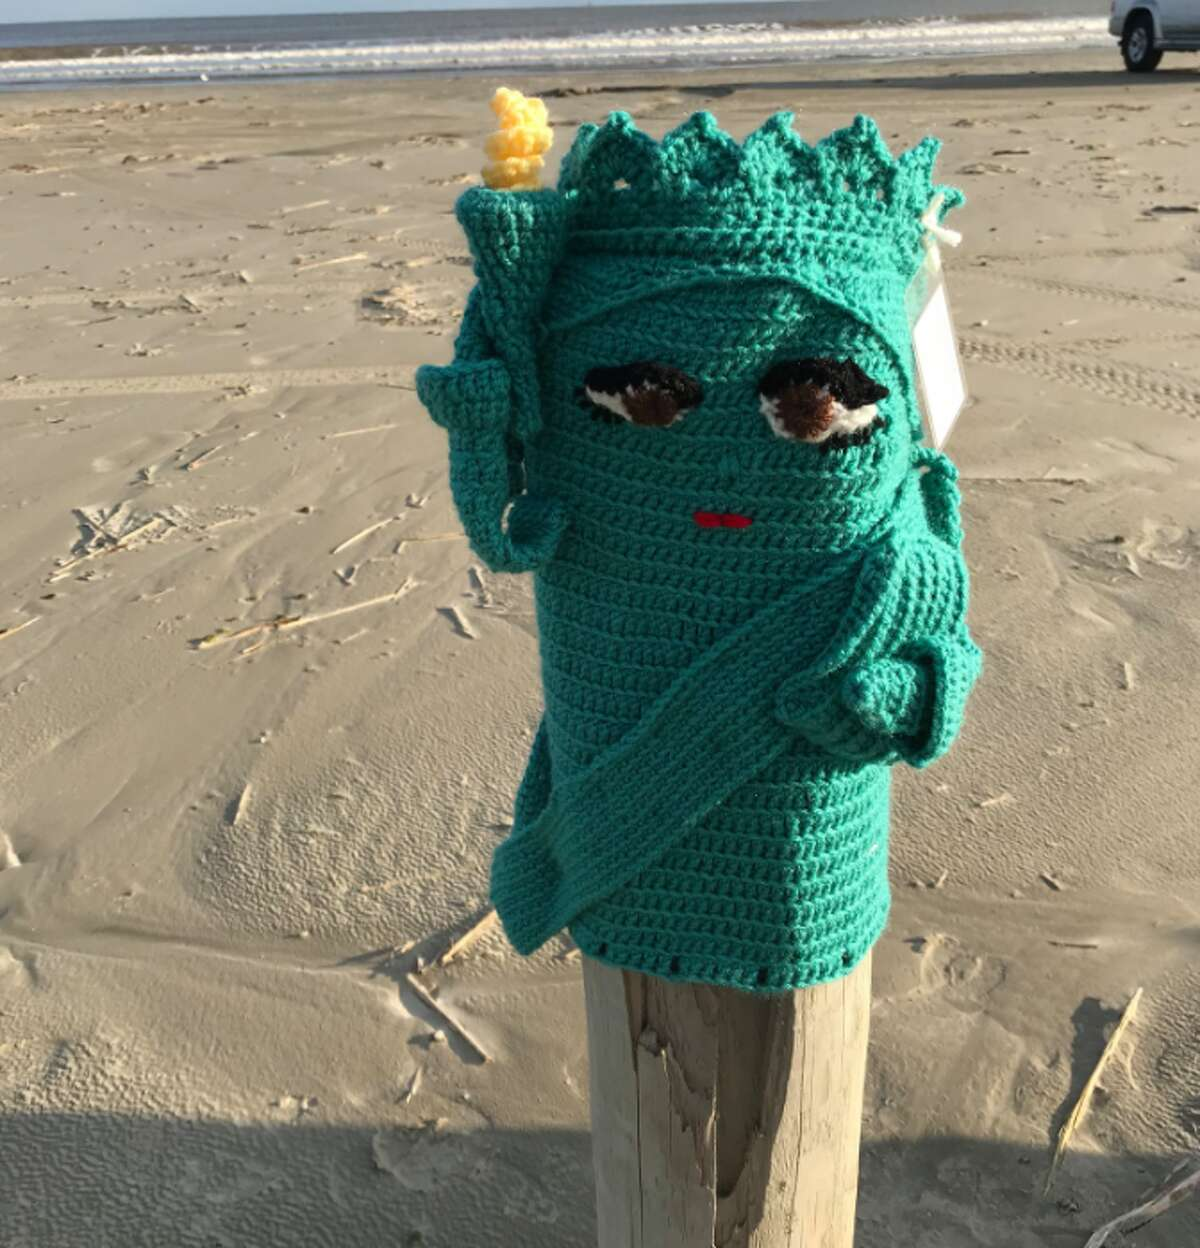 The yarn buddies are placed on the bollards from Horace Caldwell Pier all the way the south jetties, Vondra said.  Vondra said she chose to set up the yarn buddies during the winter months due to the beach being a bit